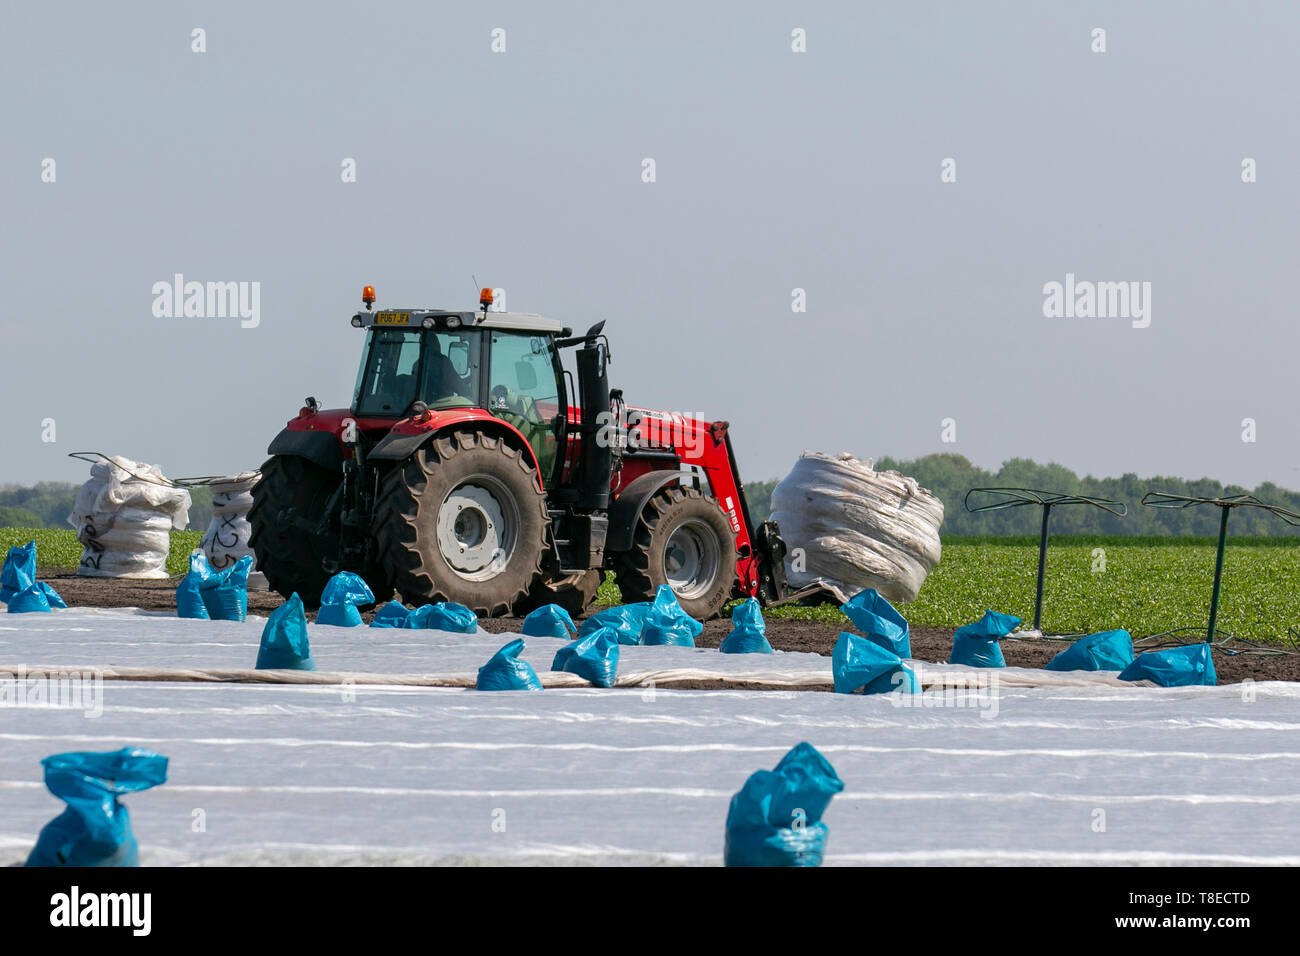 Tarleton, Merseyside. 13th May, 2019. UK Weather. Bright and sunny in the 'Salad Bowl' of Lancashire as the fine dry weather allows farmers access to the drying farmland with their tractors which first till the land, which is then planted with seedlings, and then covered against frosts. Credit: MediaWorldImages/AlamyLiveNews. - Stock Image